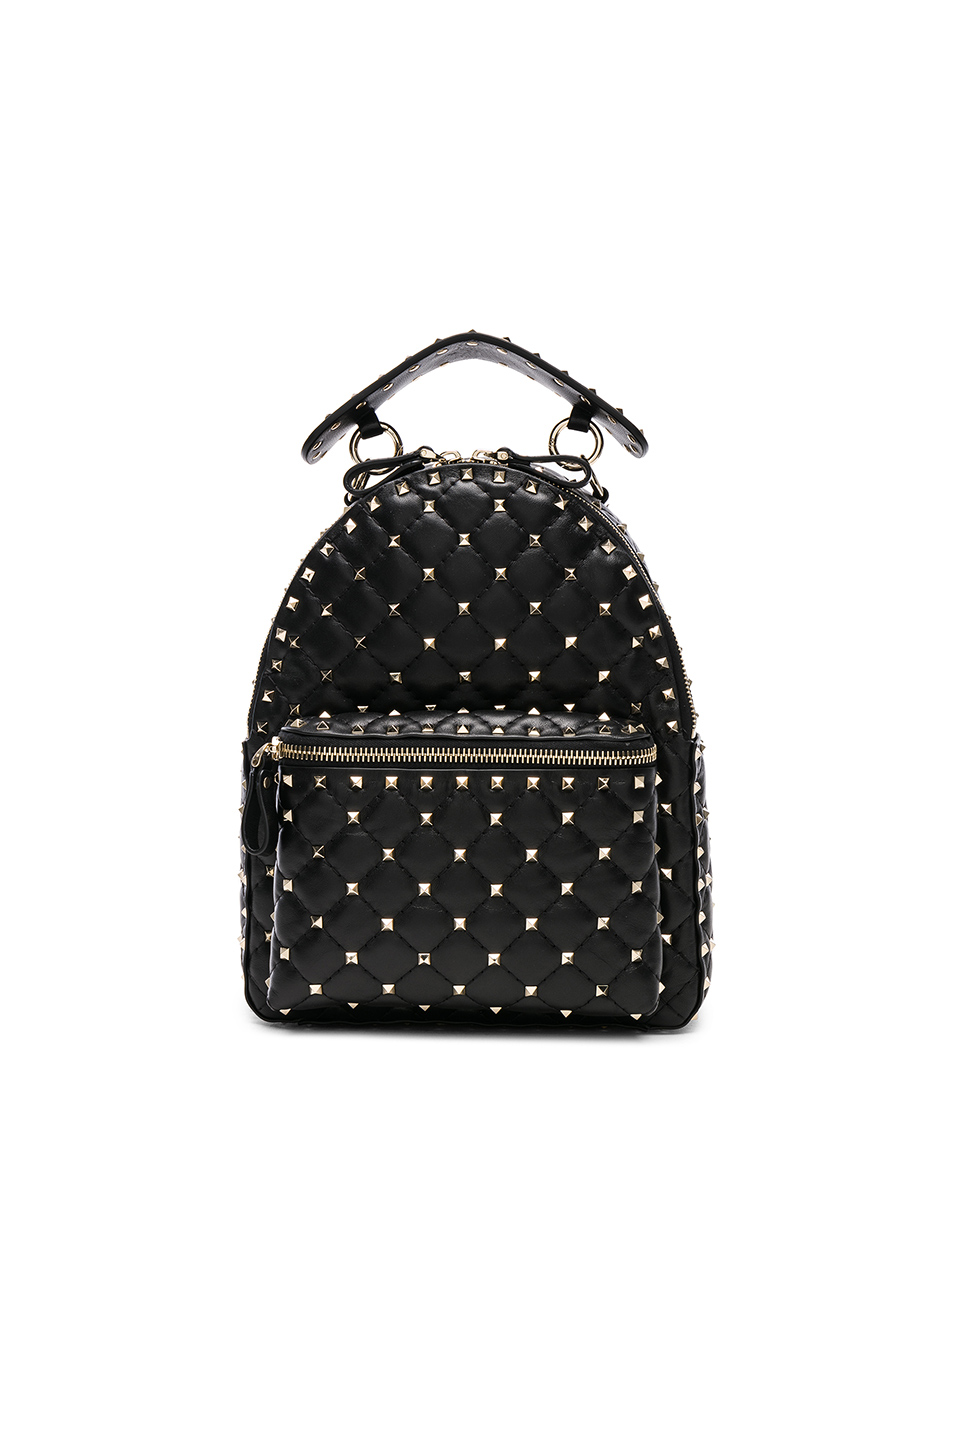 Valentino Small Rockstud Spike Backpack · Valentino Small Rockstud Spike  Backpack ... 104a1712fc